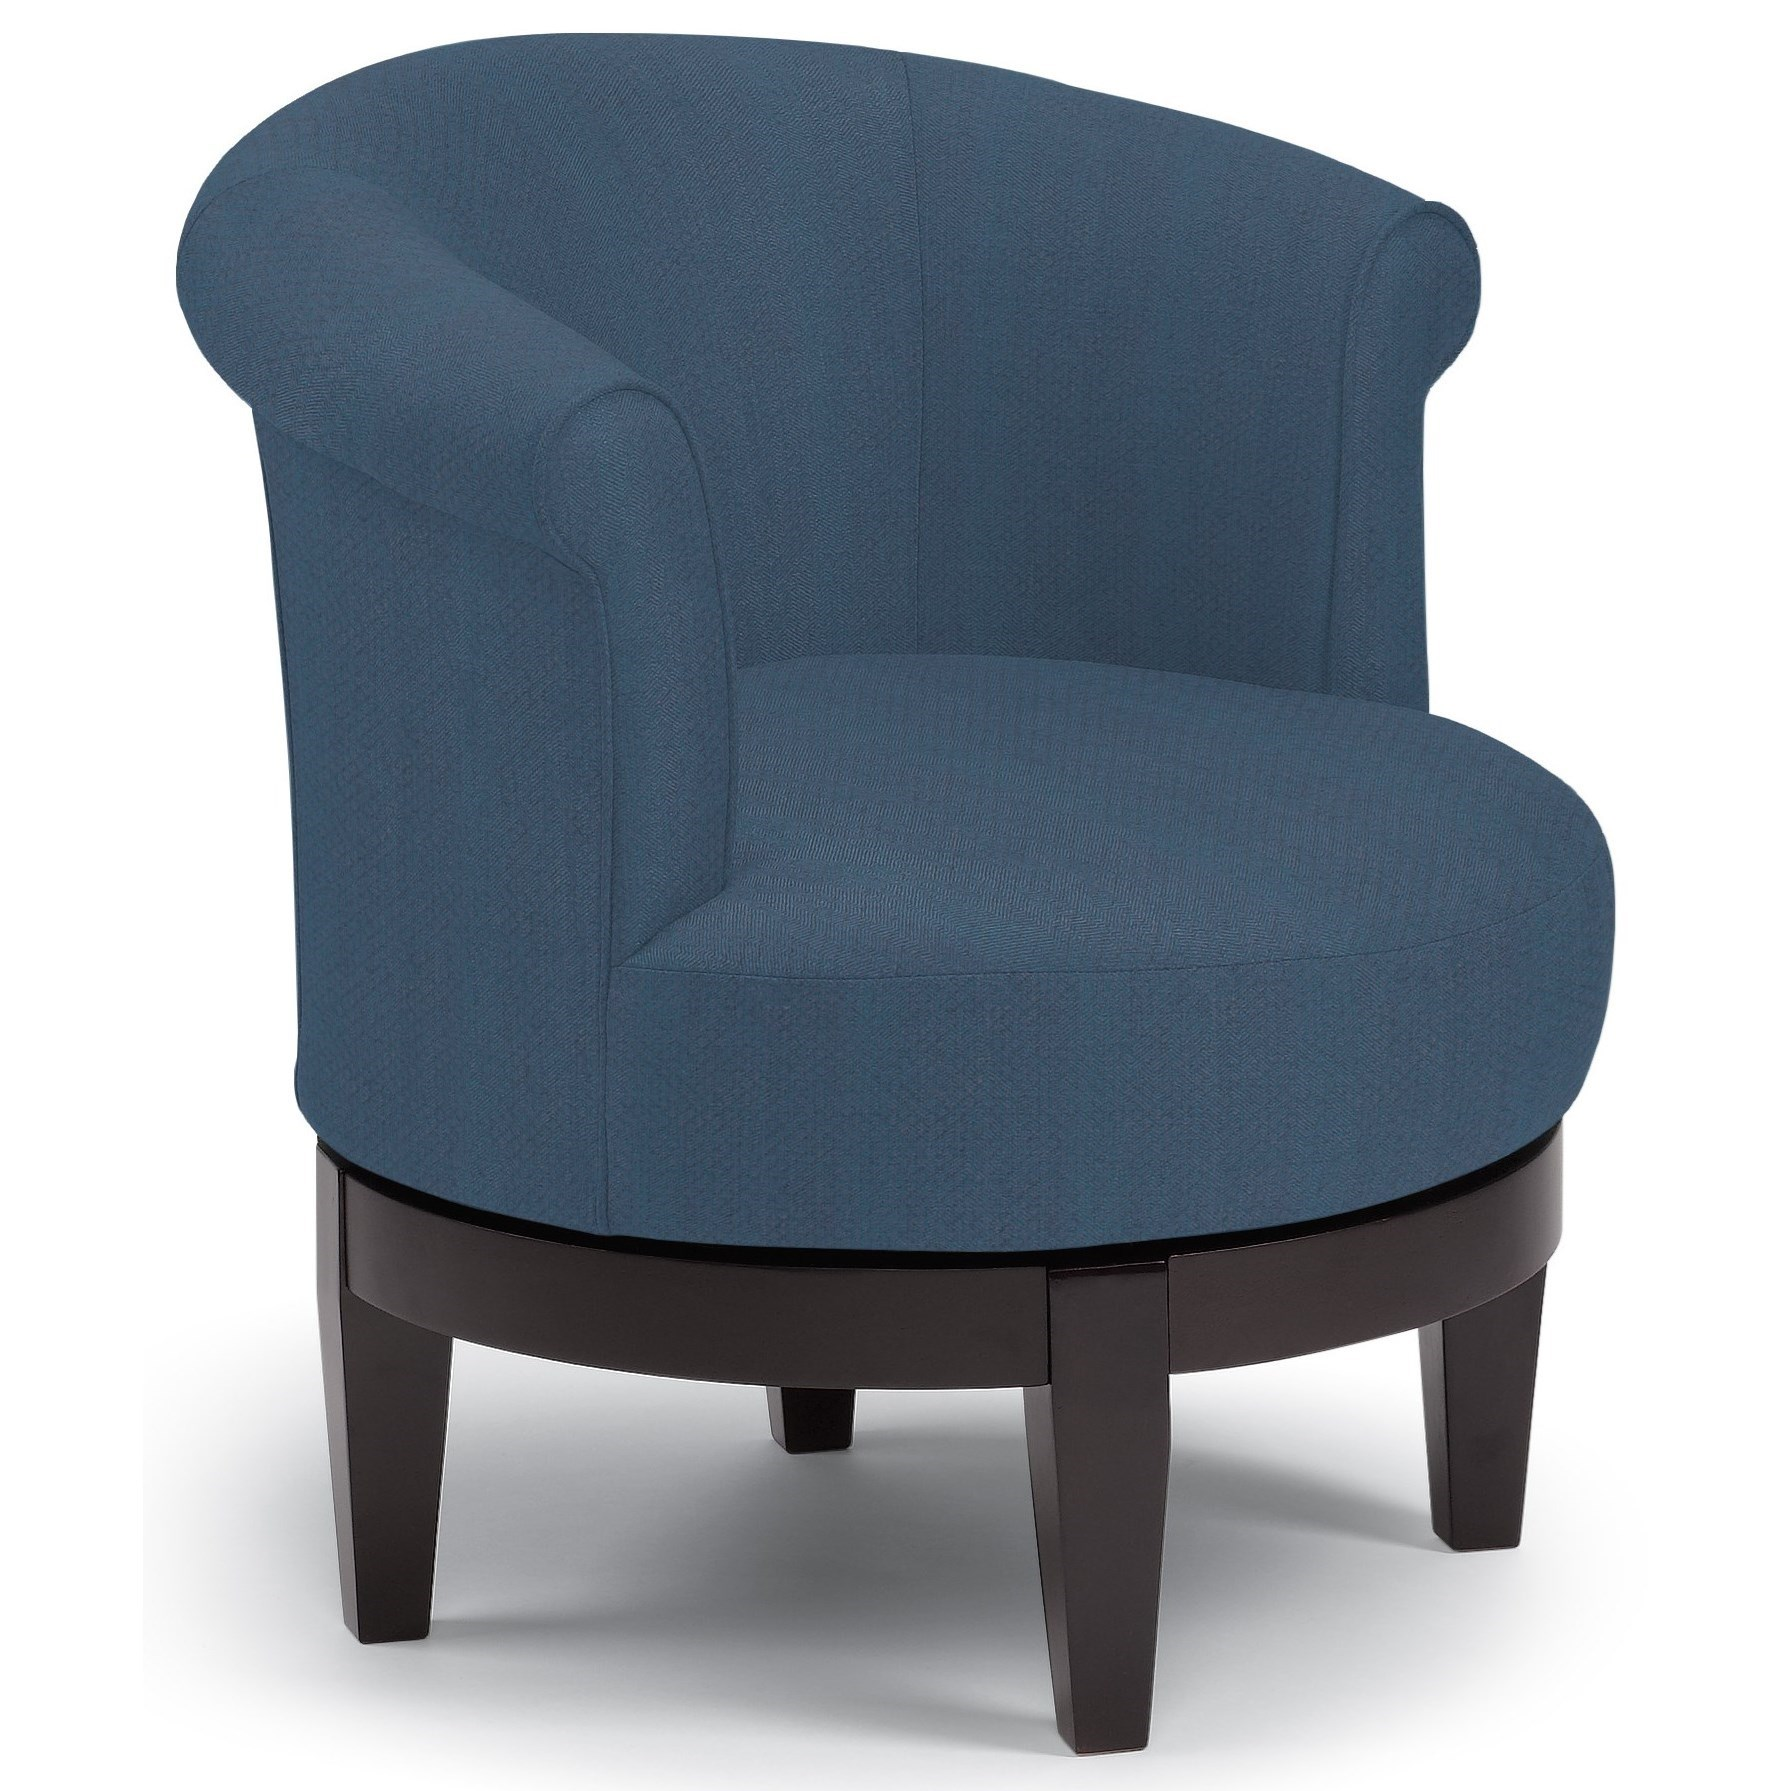 Chairs - Swivel Barrel Attica Swivel Chair by Best Home Furnishings at Steger's Furniture